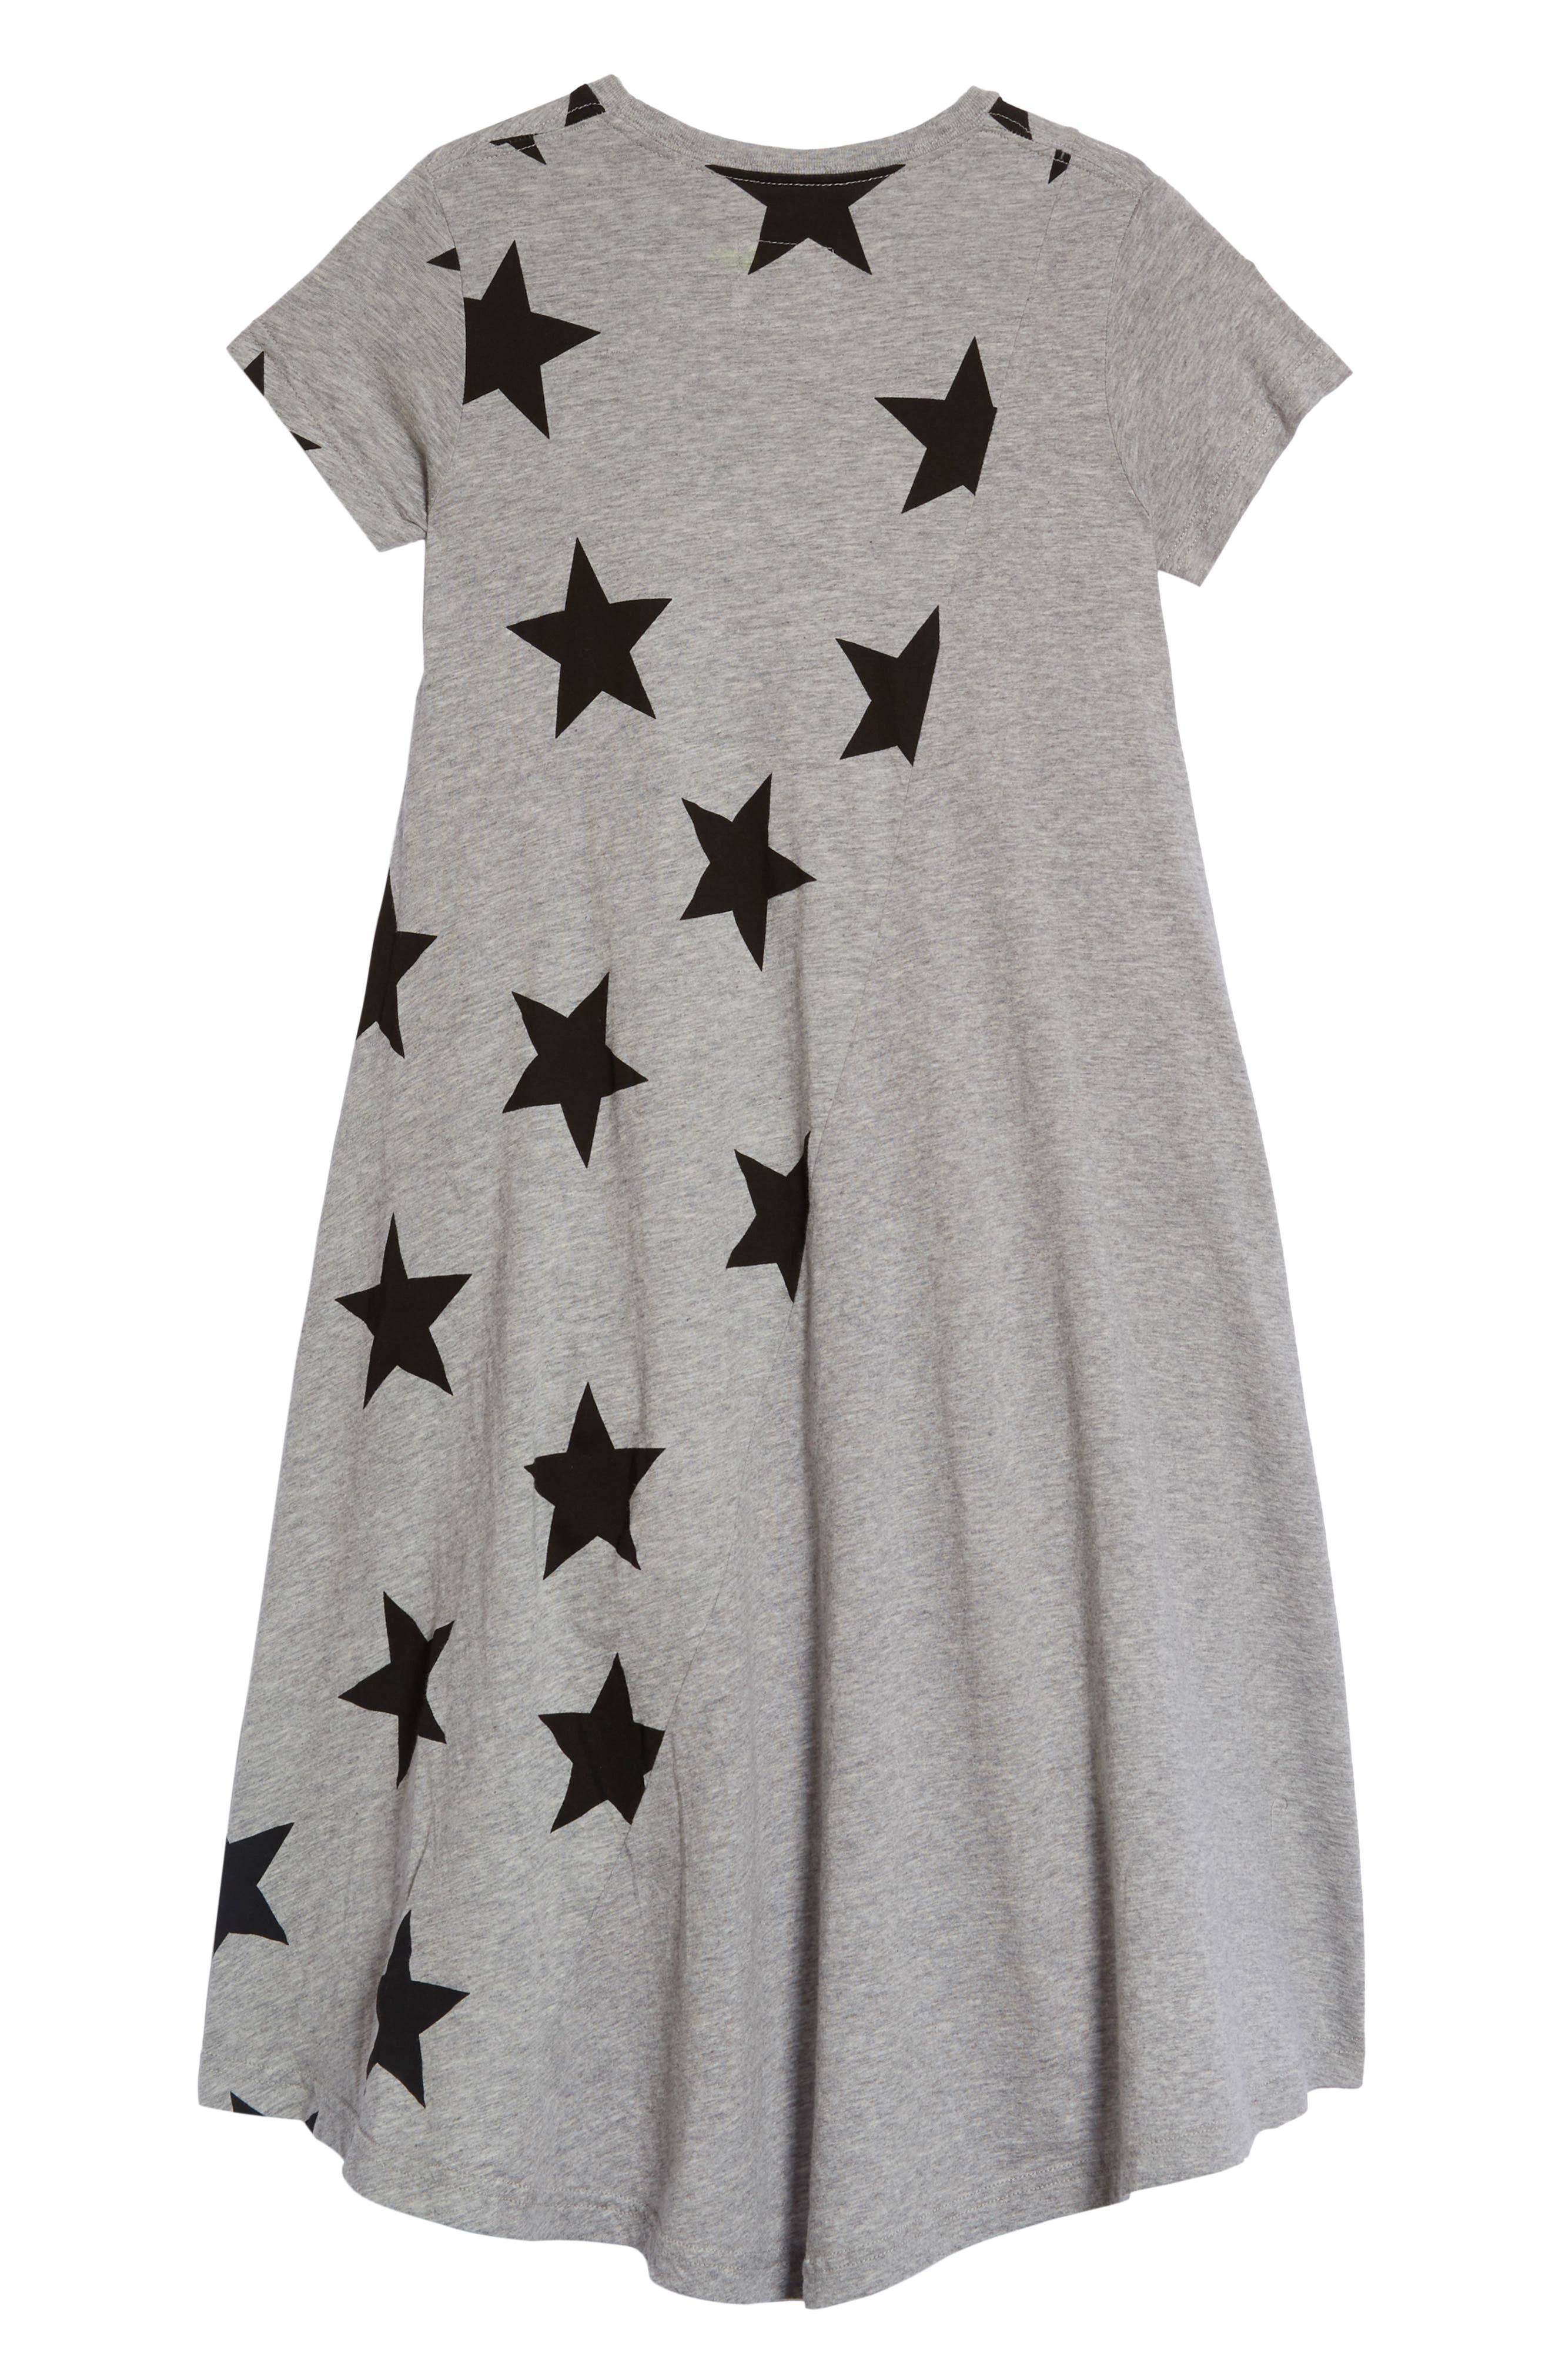 360 Star Print Dress,                             Alternate thumbnail 2, color,                             050